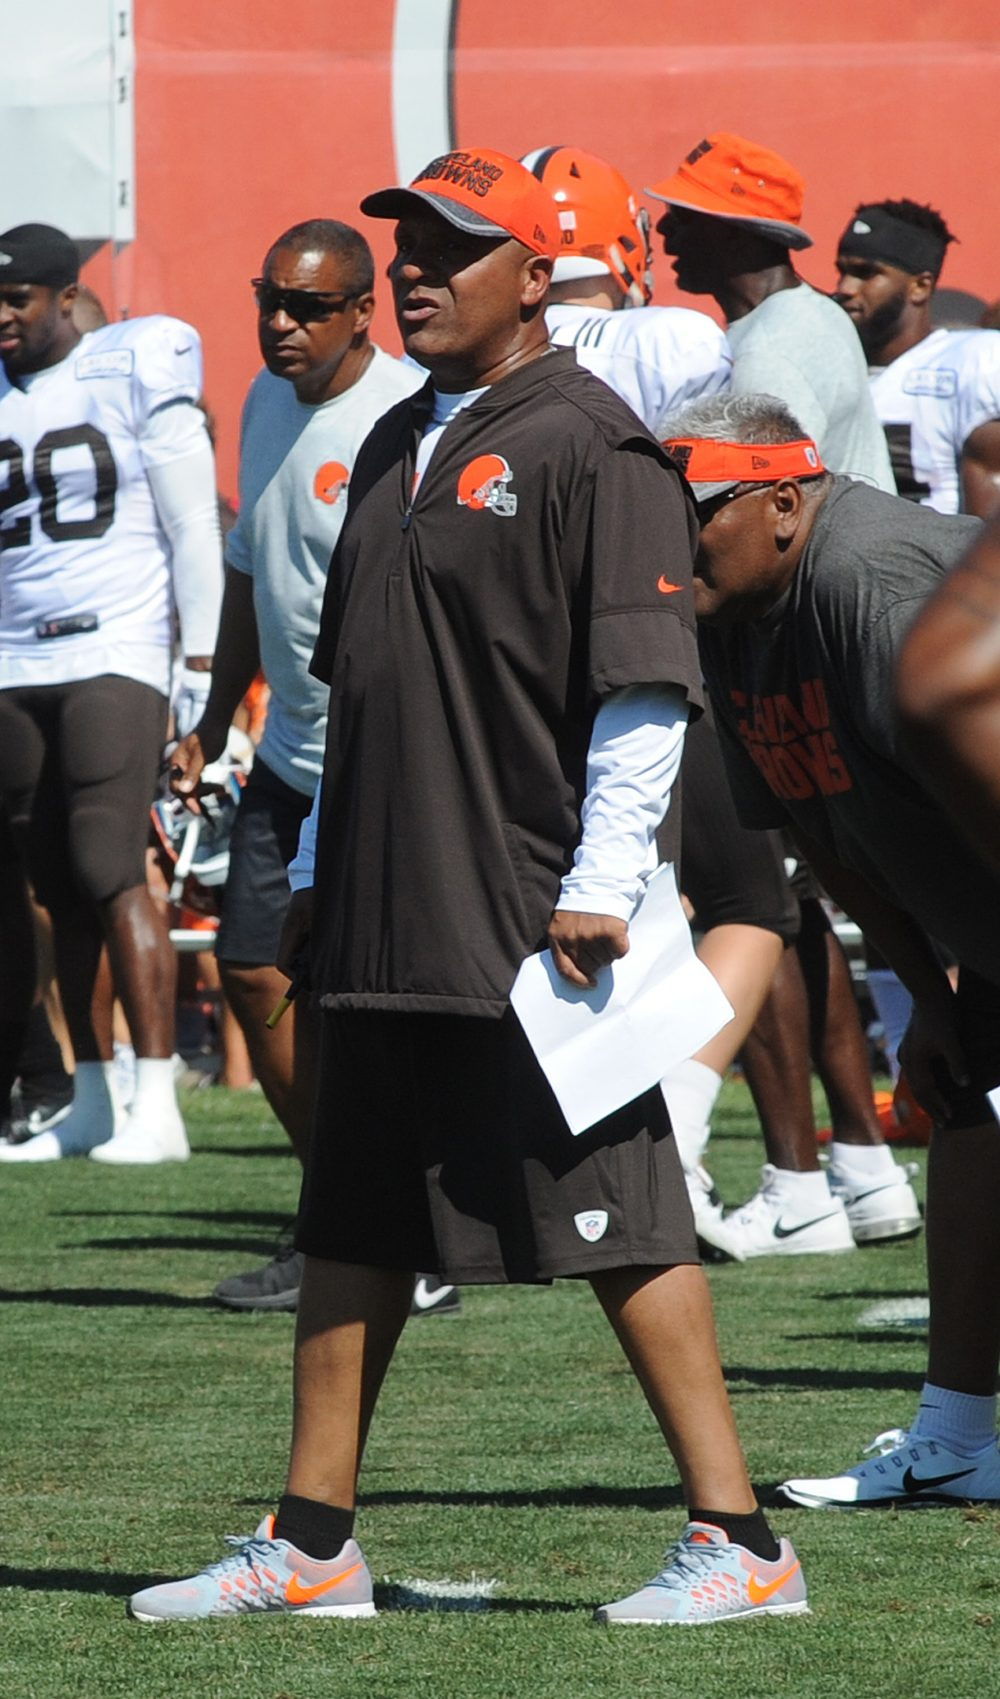 The Browns will open training camp Thursday